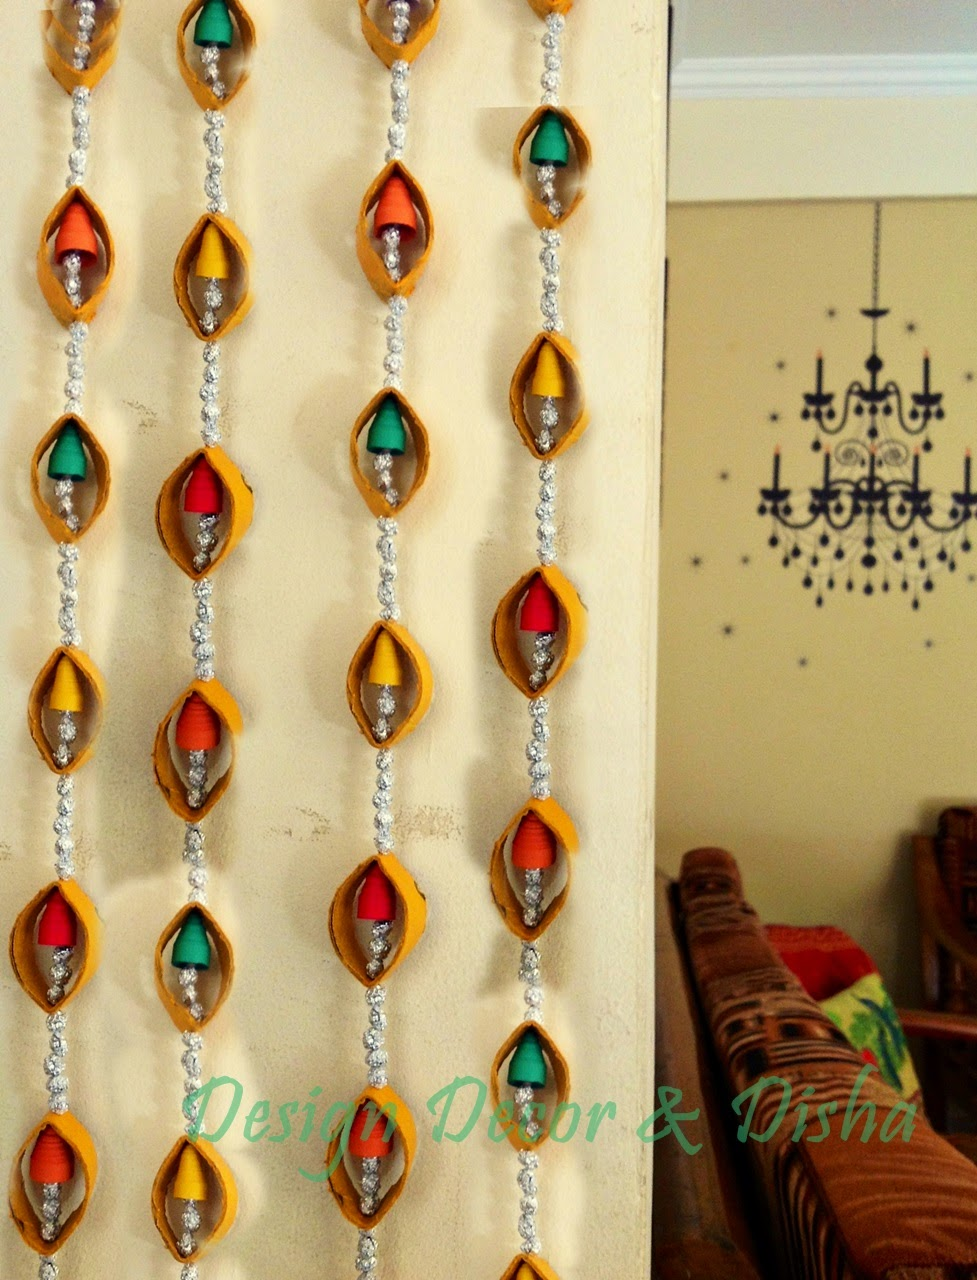 Design decor disha an indian design decor blog diy for Art and craft for wall decoration